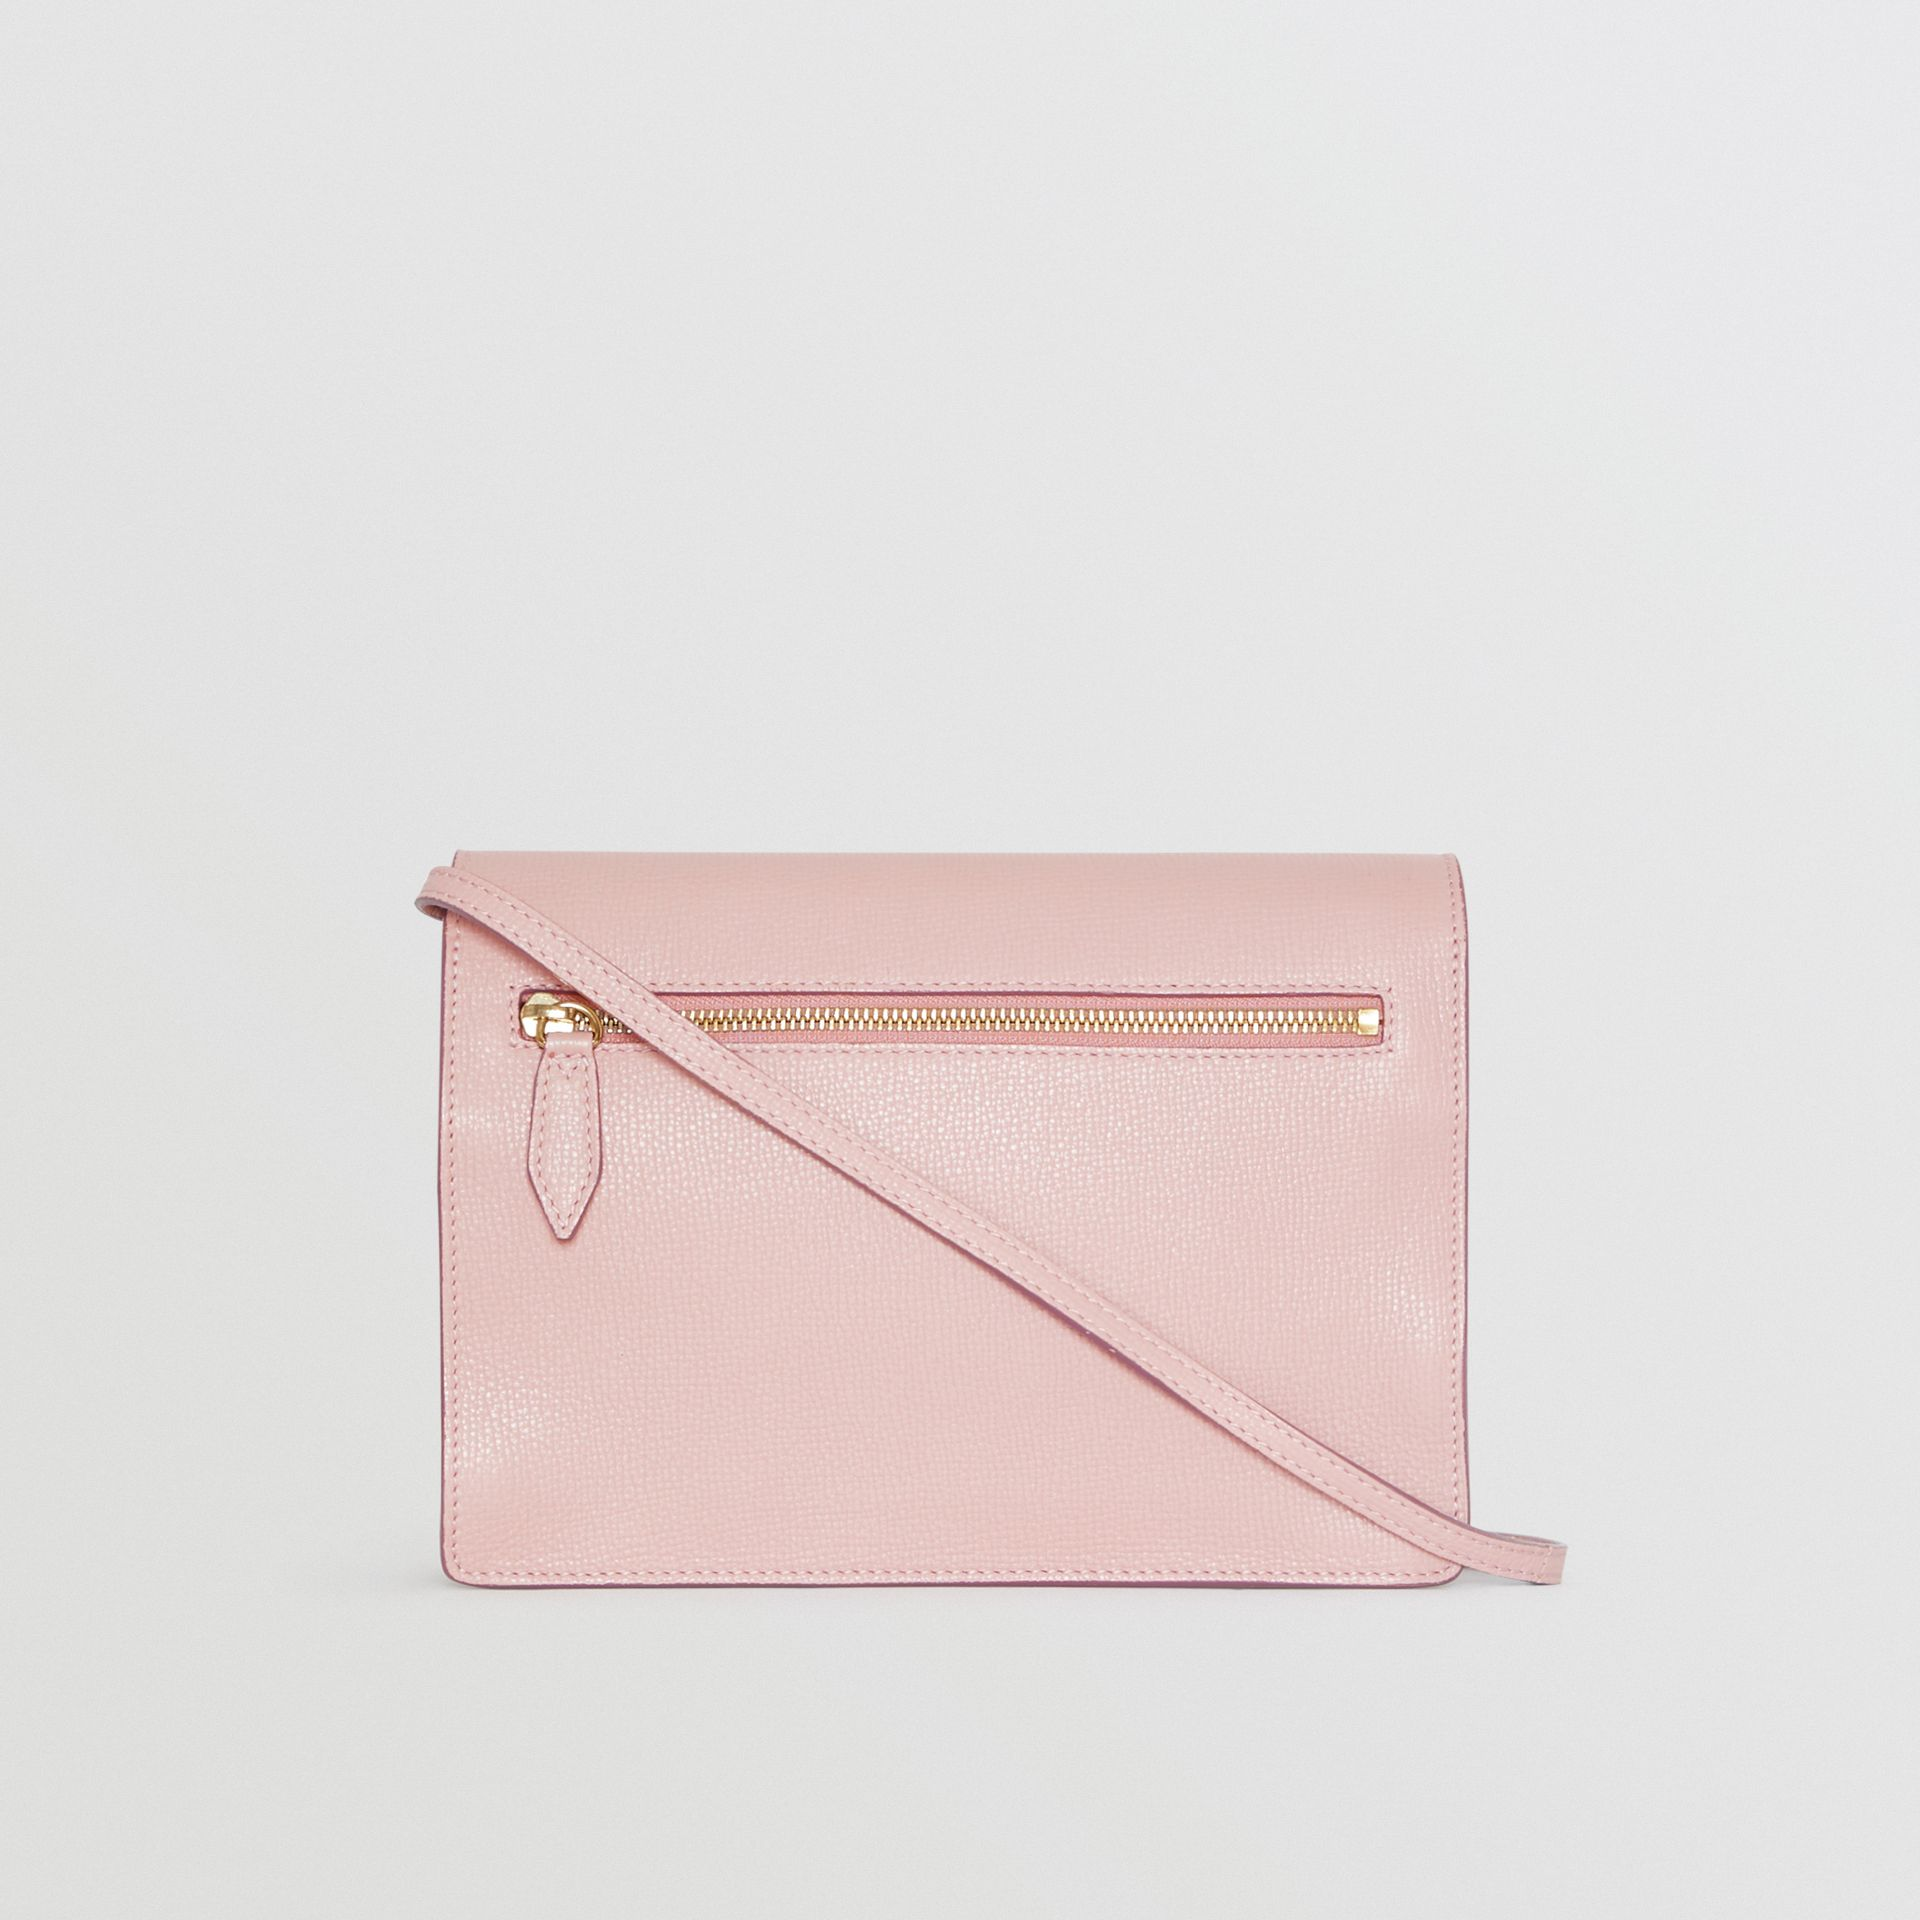 Small Leather and House Check Crossbody Bag in Pale Orchid - Women | Burberry - gallery image 7